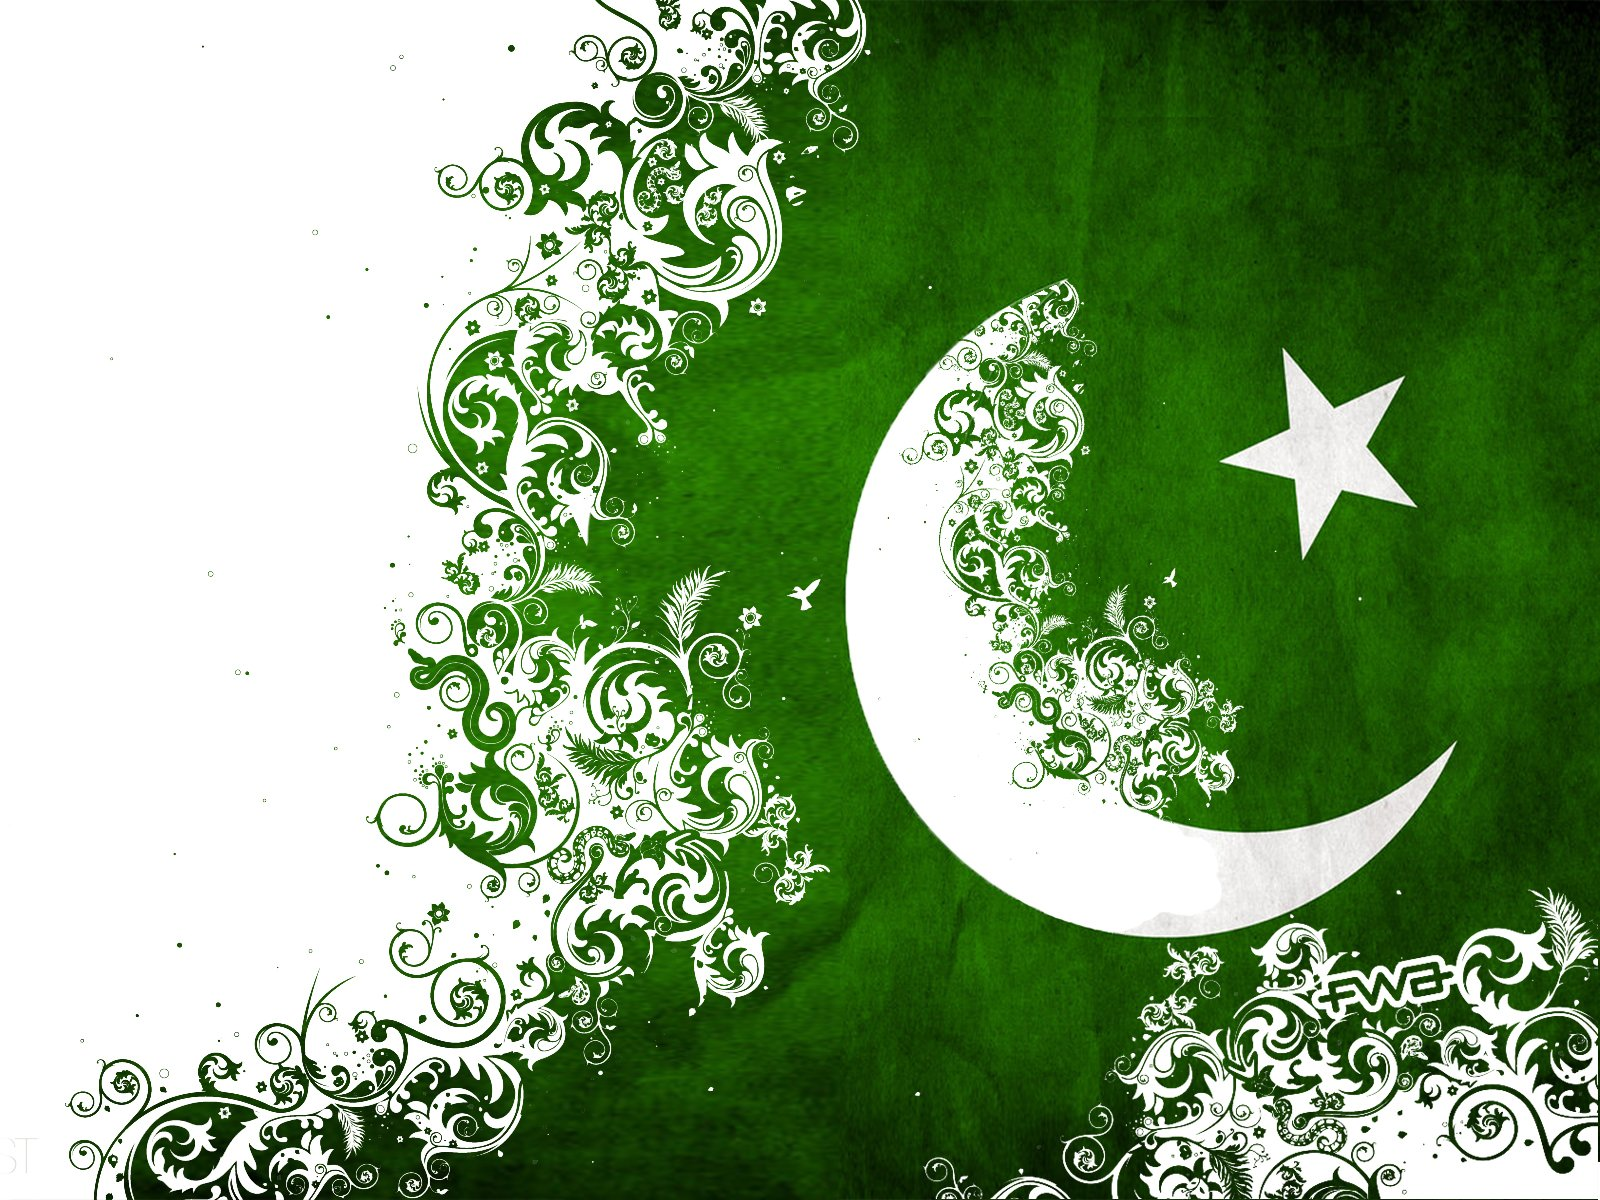 Download Pakistan Wallpapers With Complete Pakistani Culture and 1600x1200